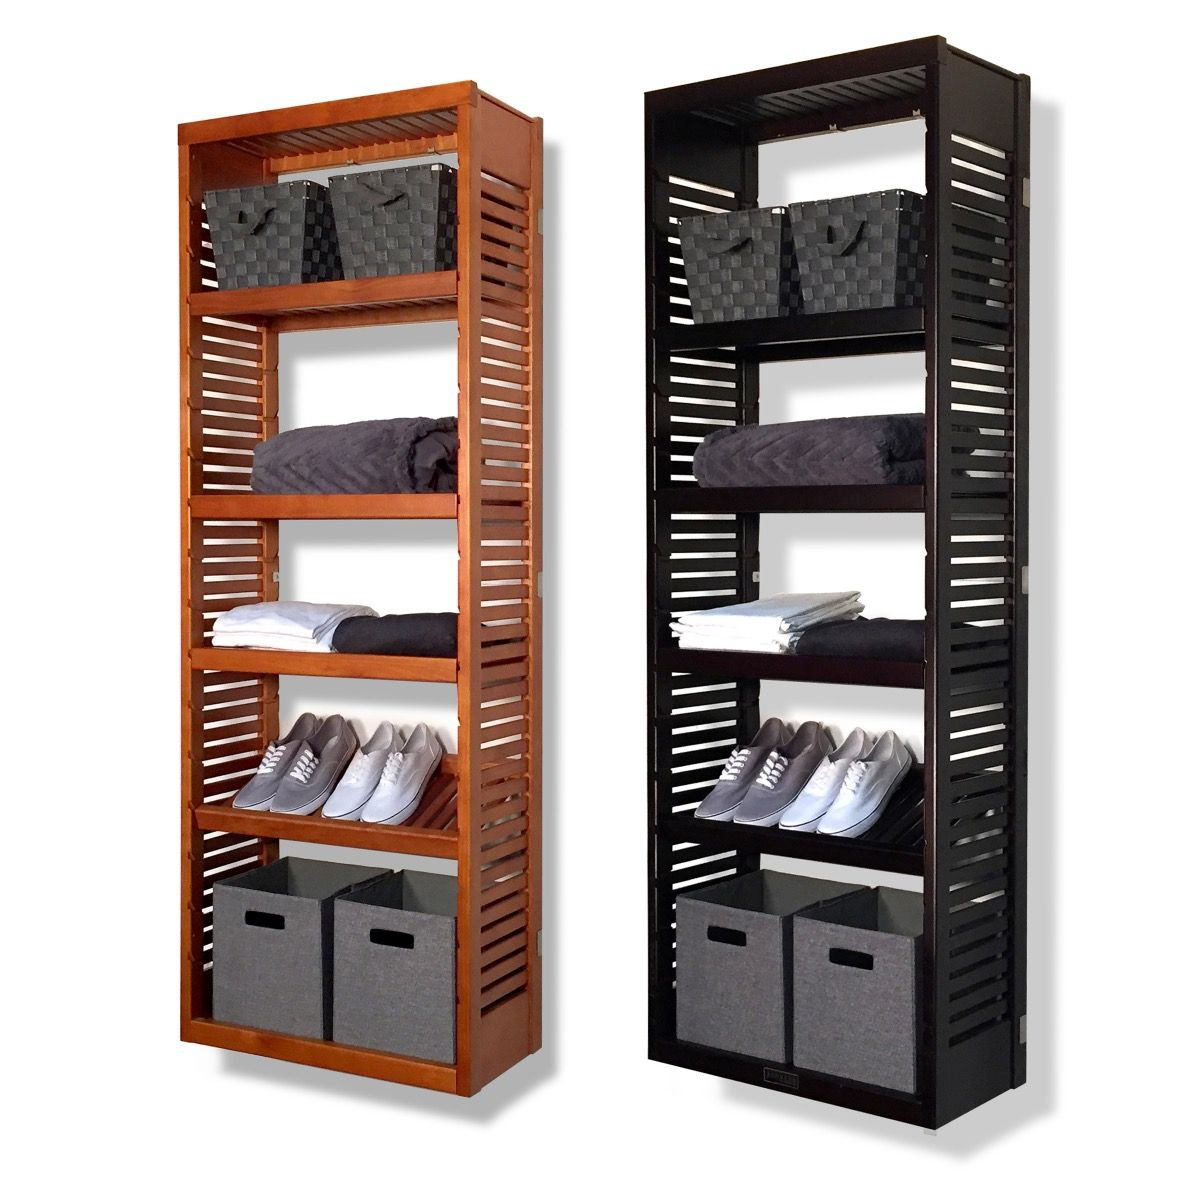 Closet Organizer Kit 12in Deep Woodcrest 6ft Tower With Adjule Shelves John Louis Home